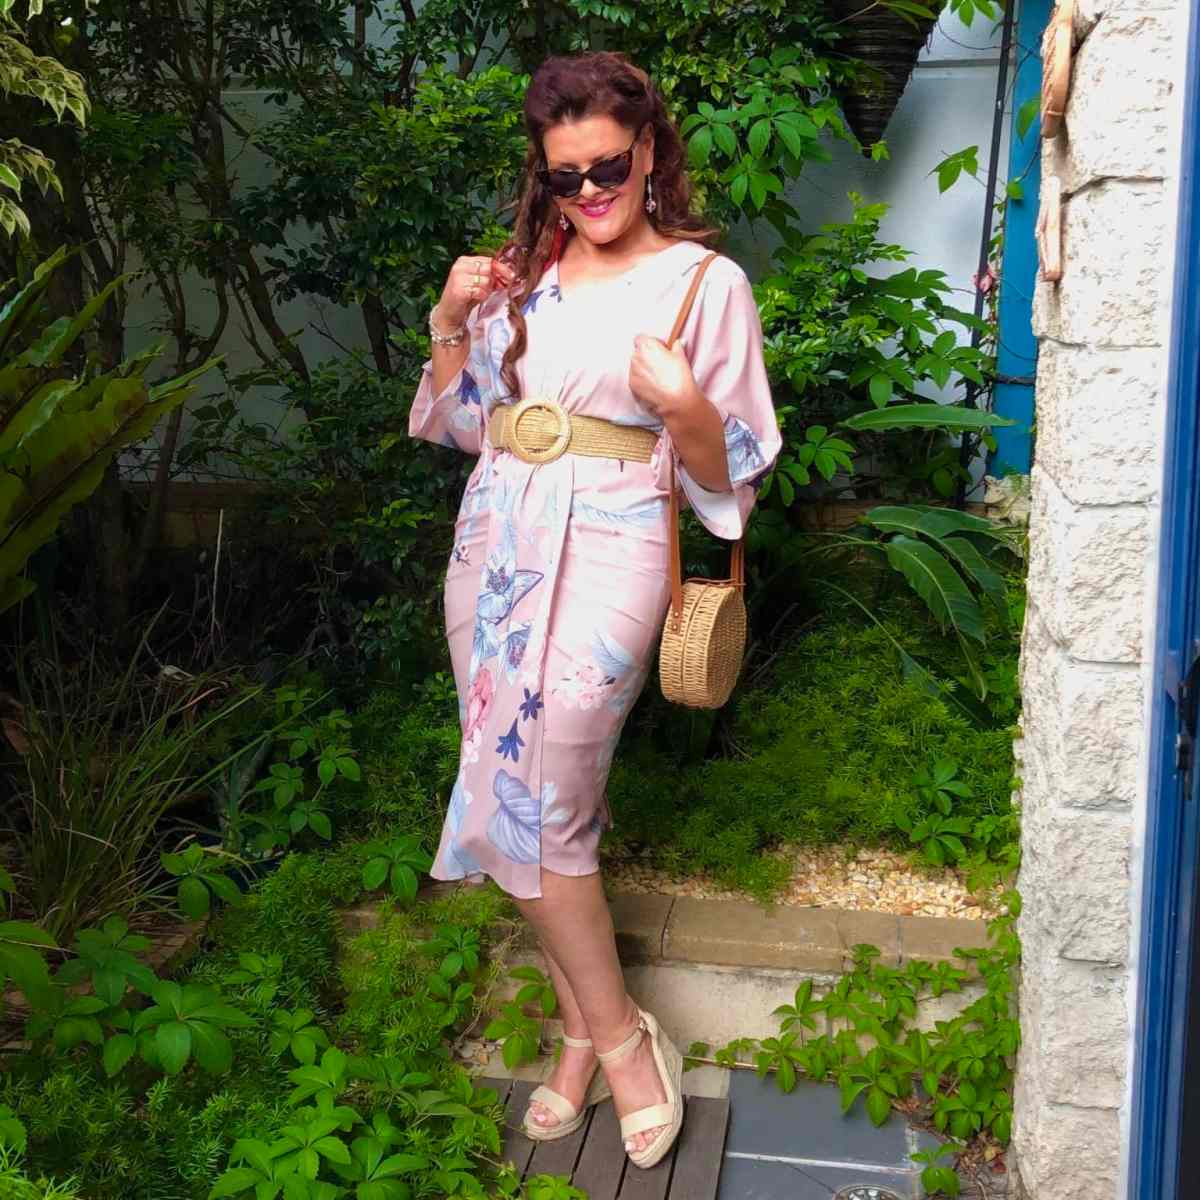 Top of the World OOTD My Fav Donna Does Dresses in romantic feminine light pink floral wrap dress